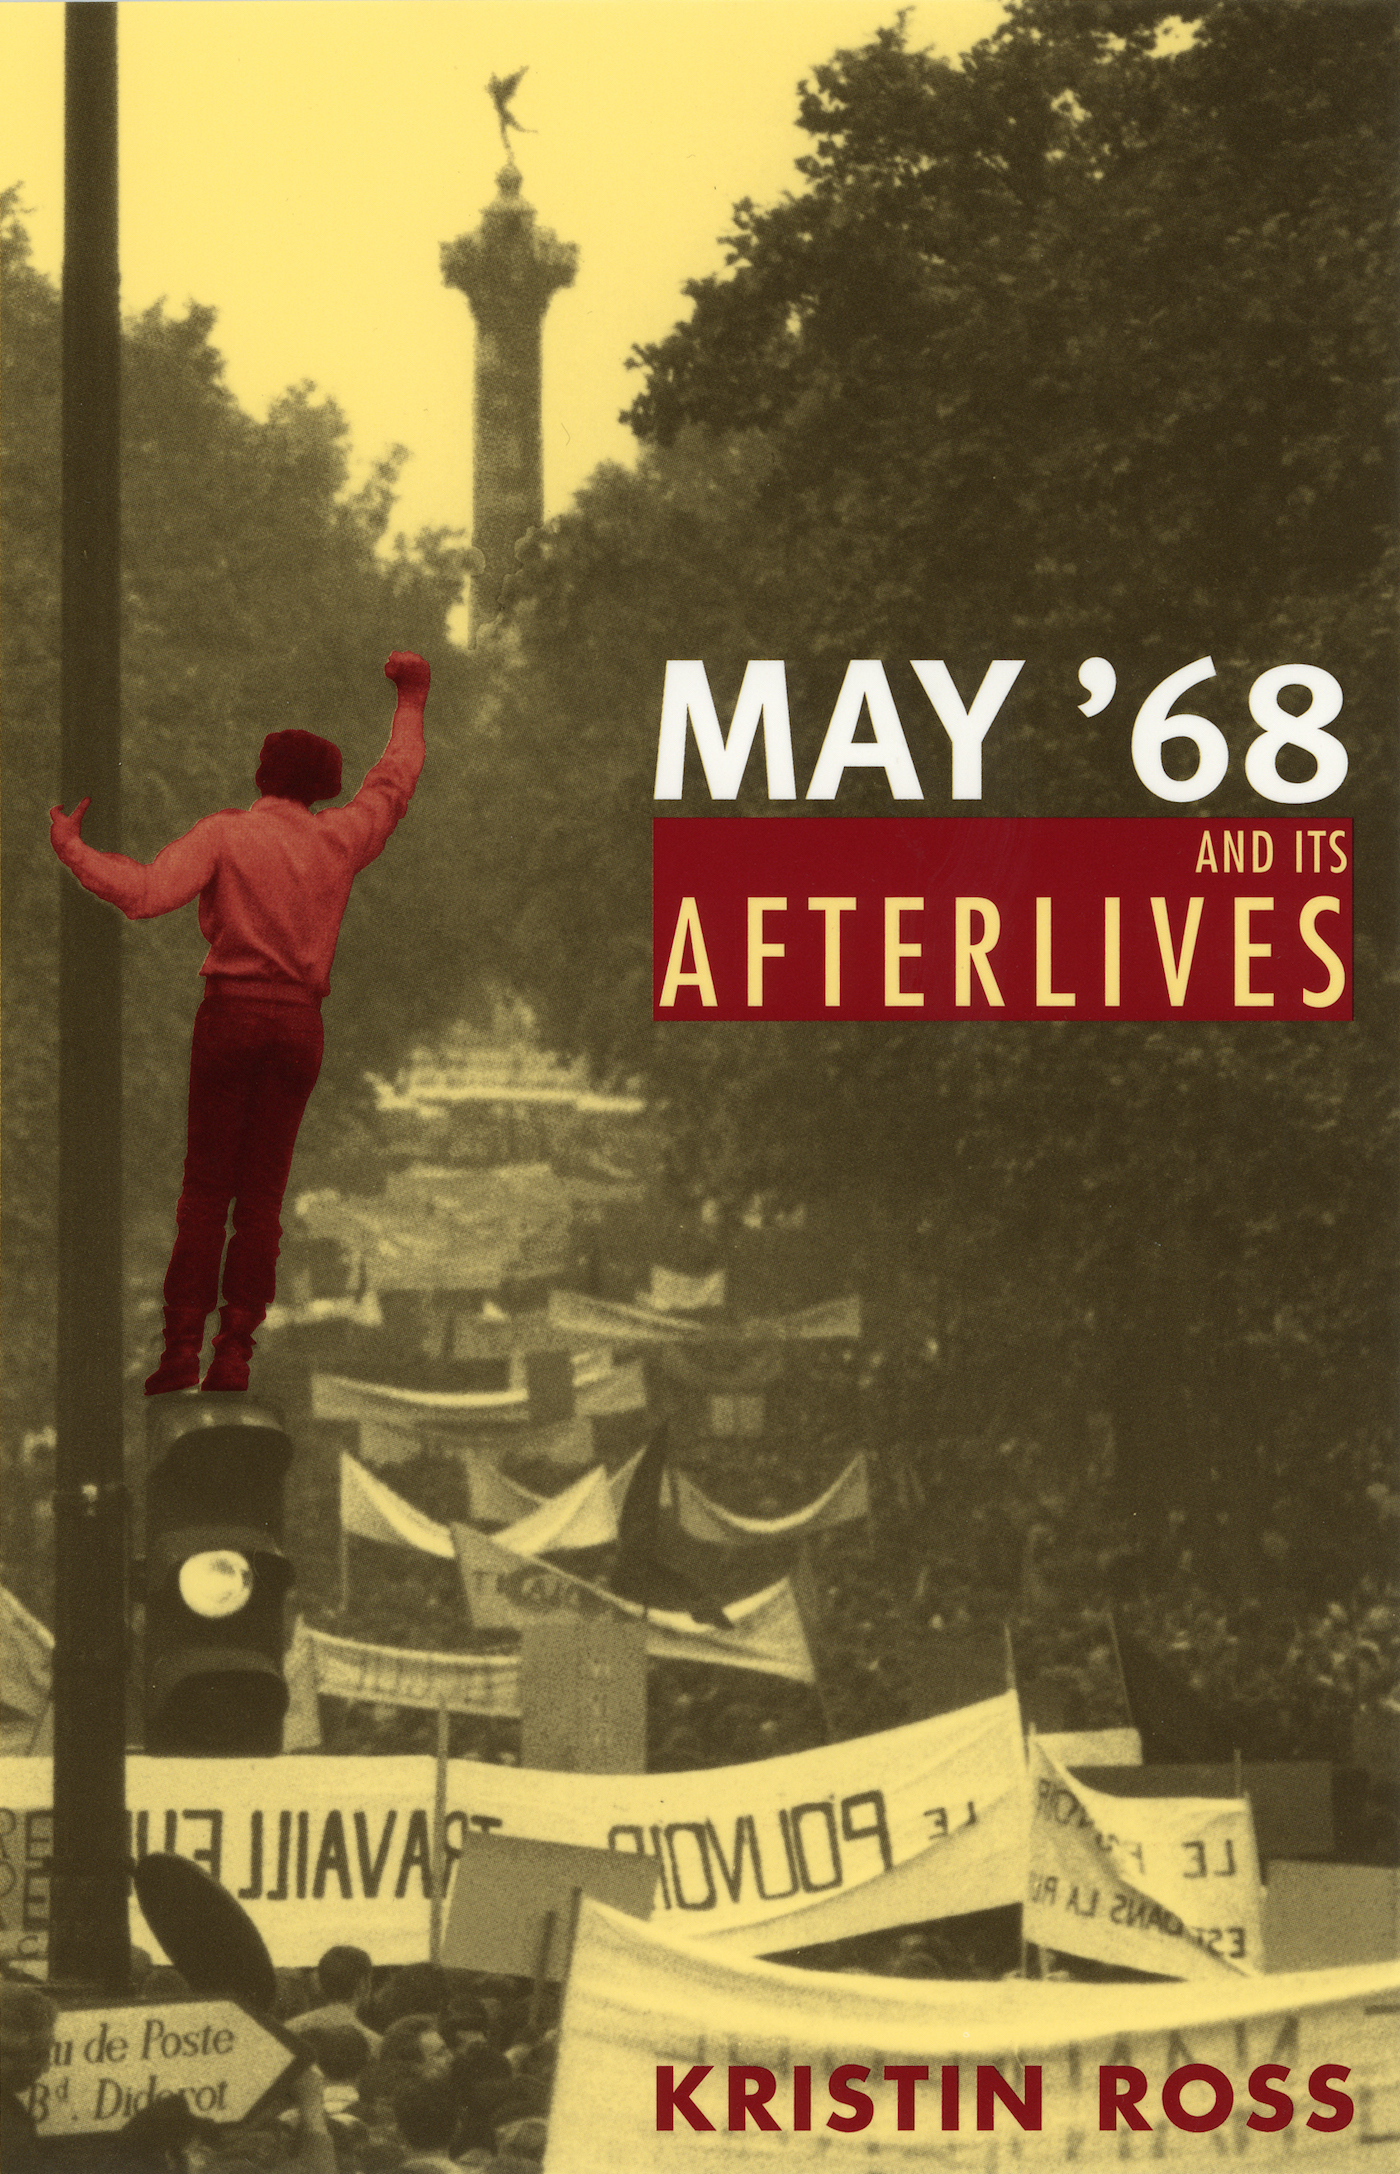 Reader S Diary Kristin Ross S May 68 And Its Afterlives